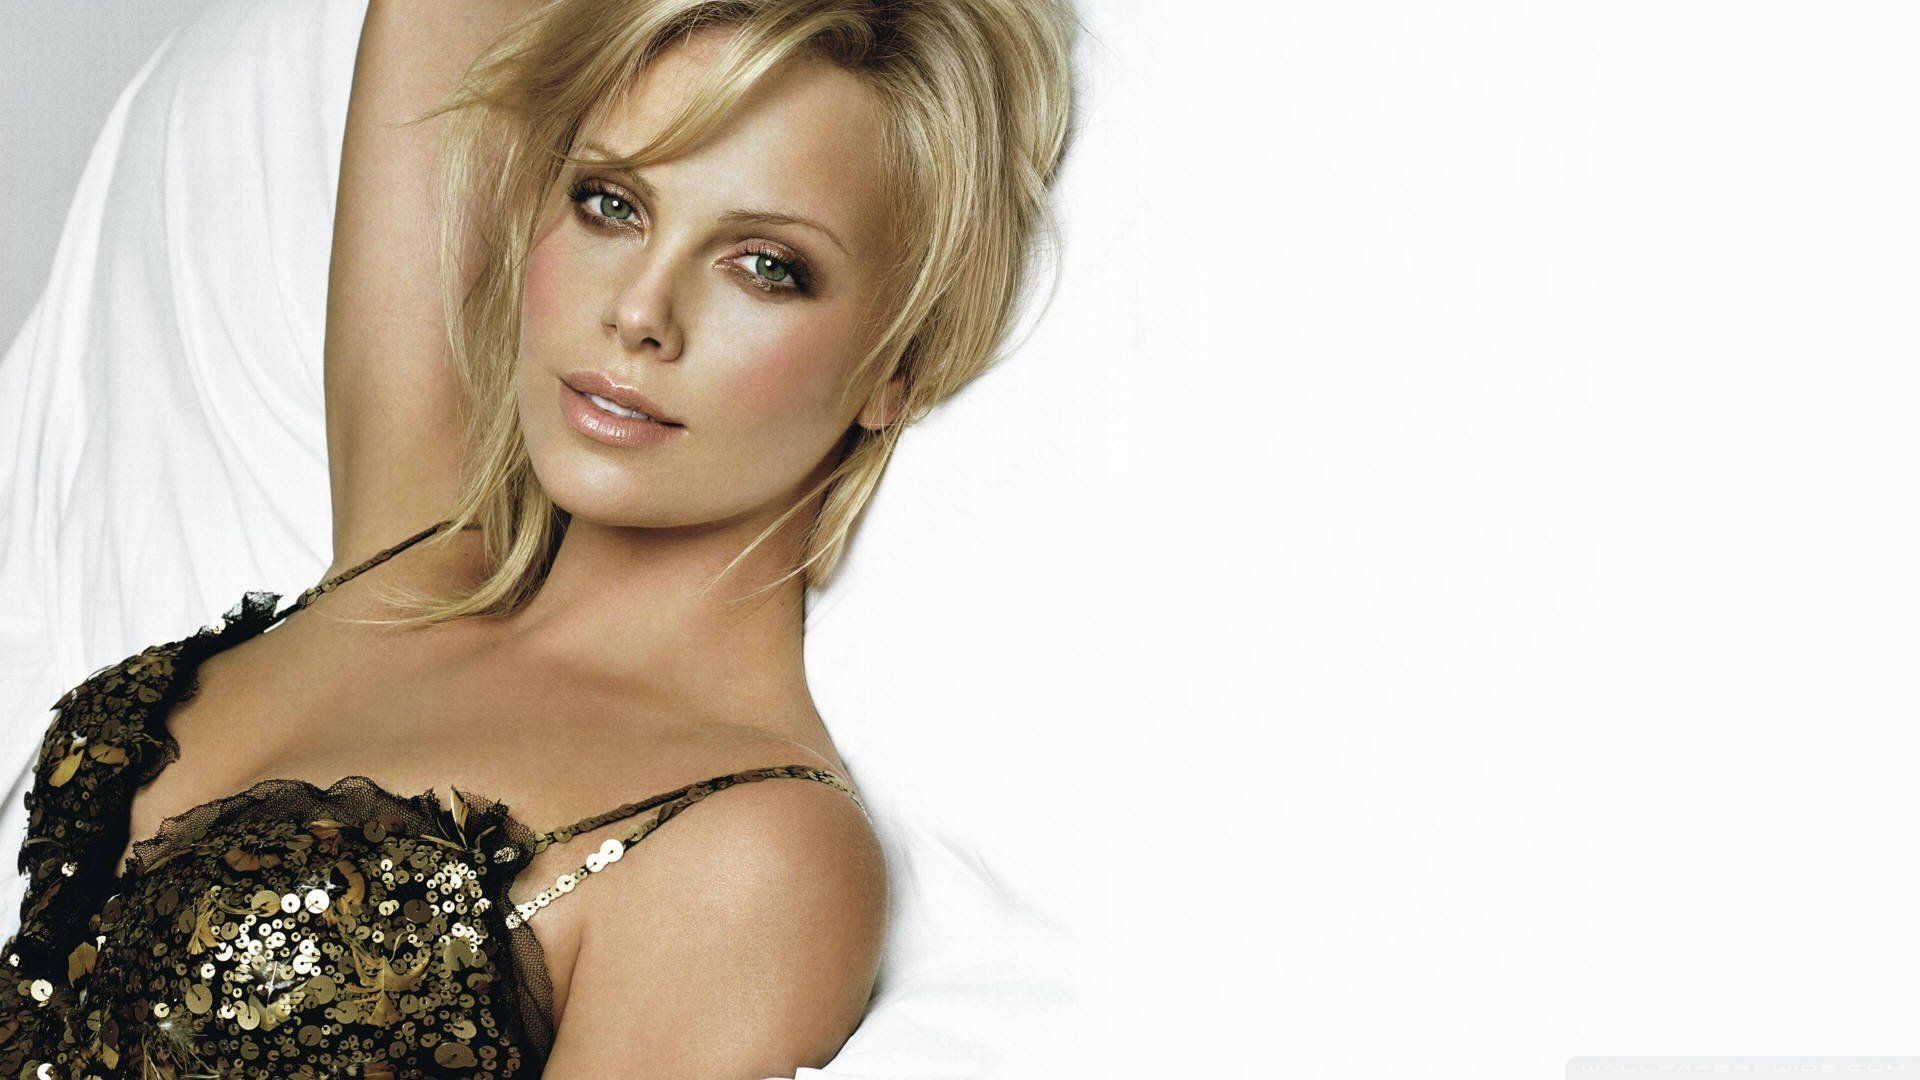 4k Wallpaper Girl Pussey 25 Charlize Theron Latest Full Hd Wallpapers And